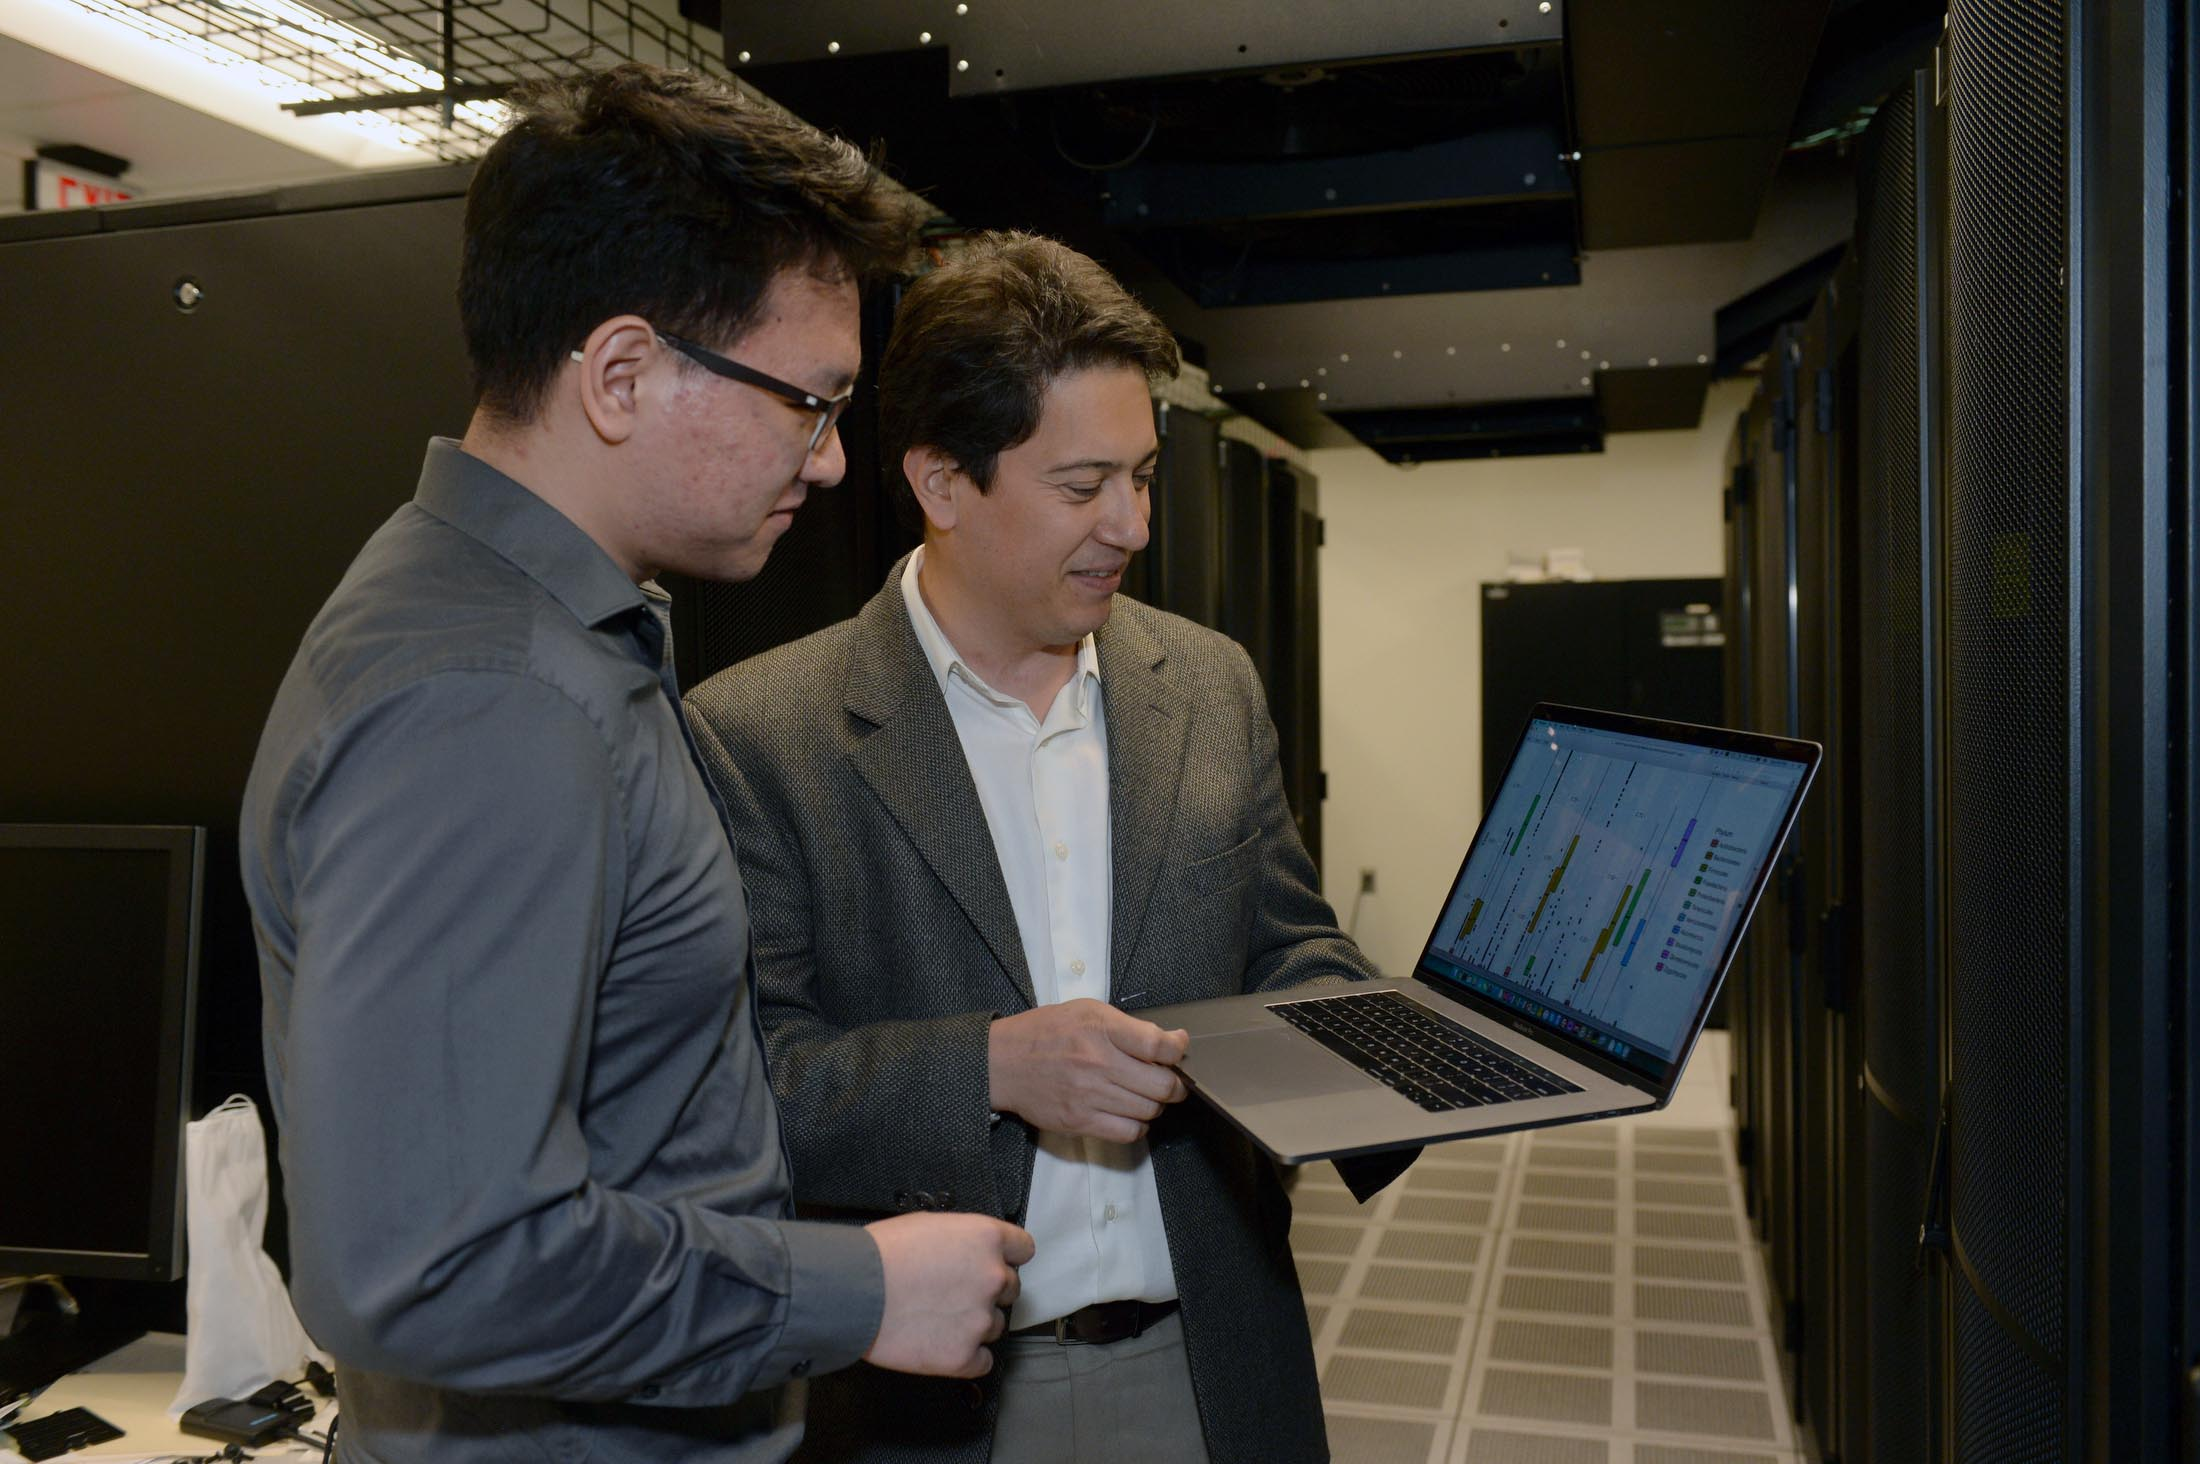 A professor and a student look at data together on a laptop.